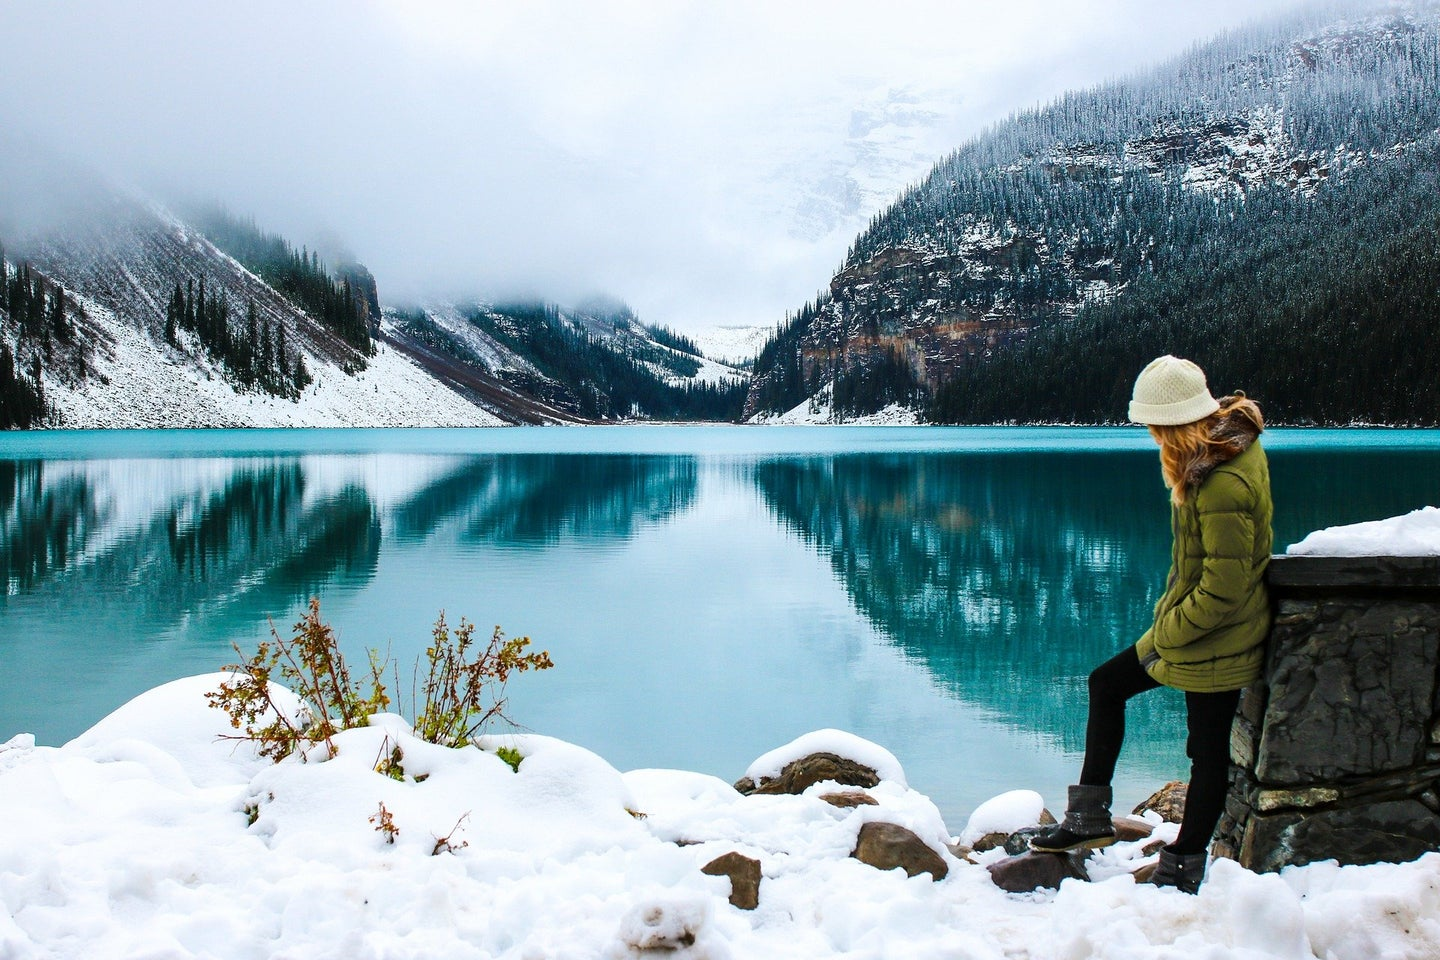 A hiker in a puffer jacket by a lake.